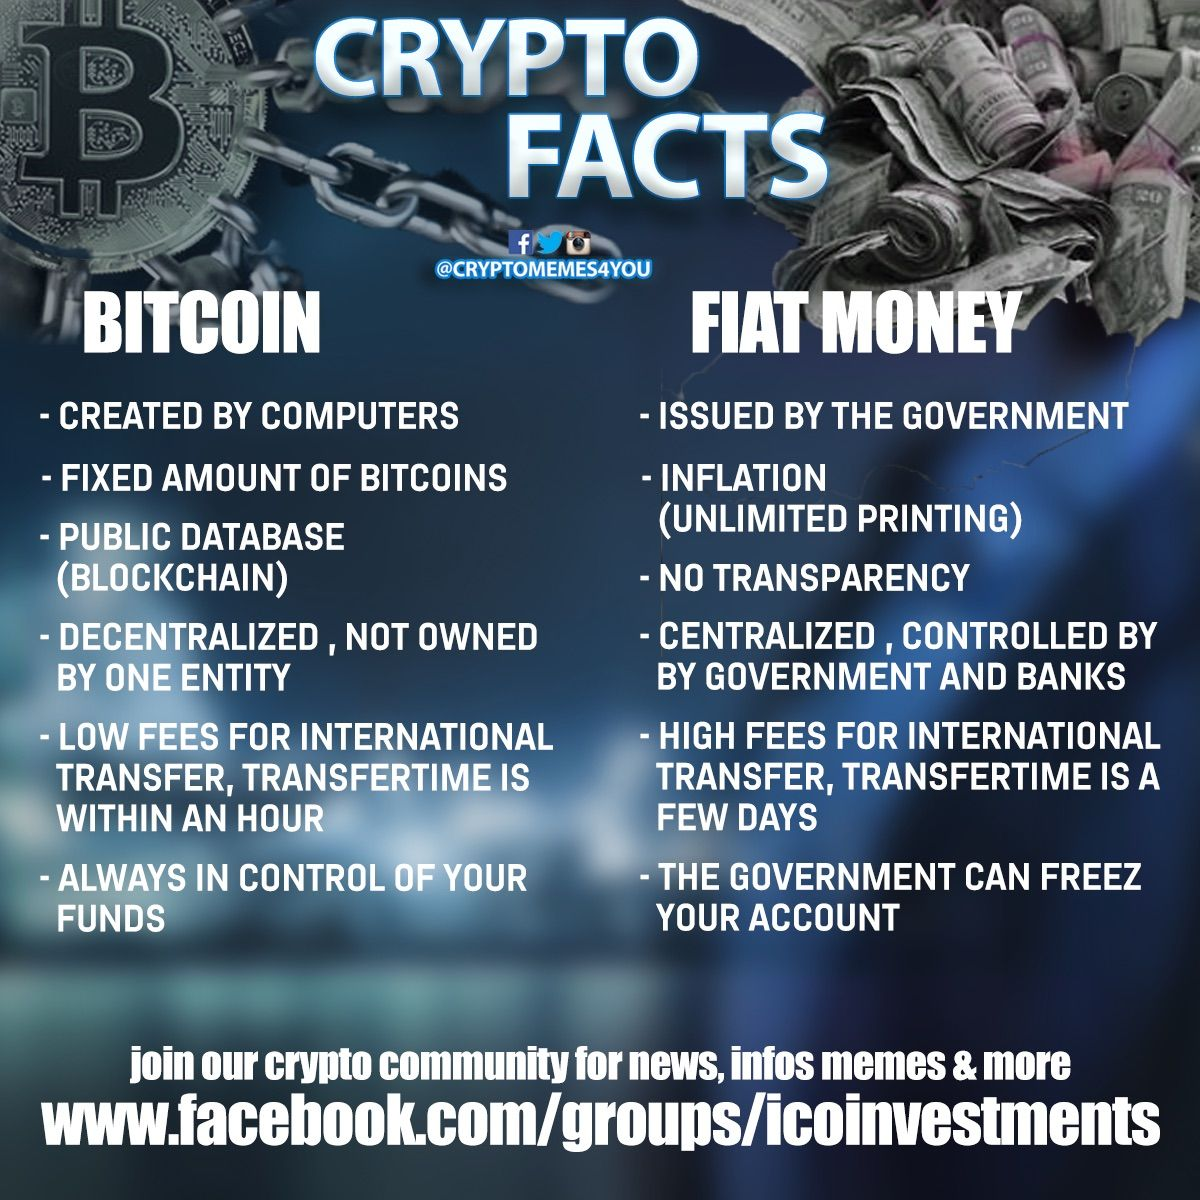 facts about cryptocurrency